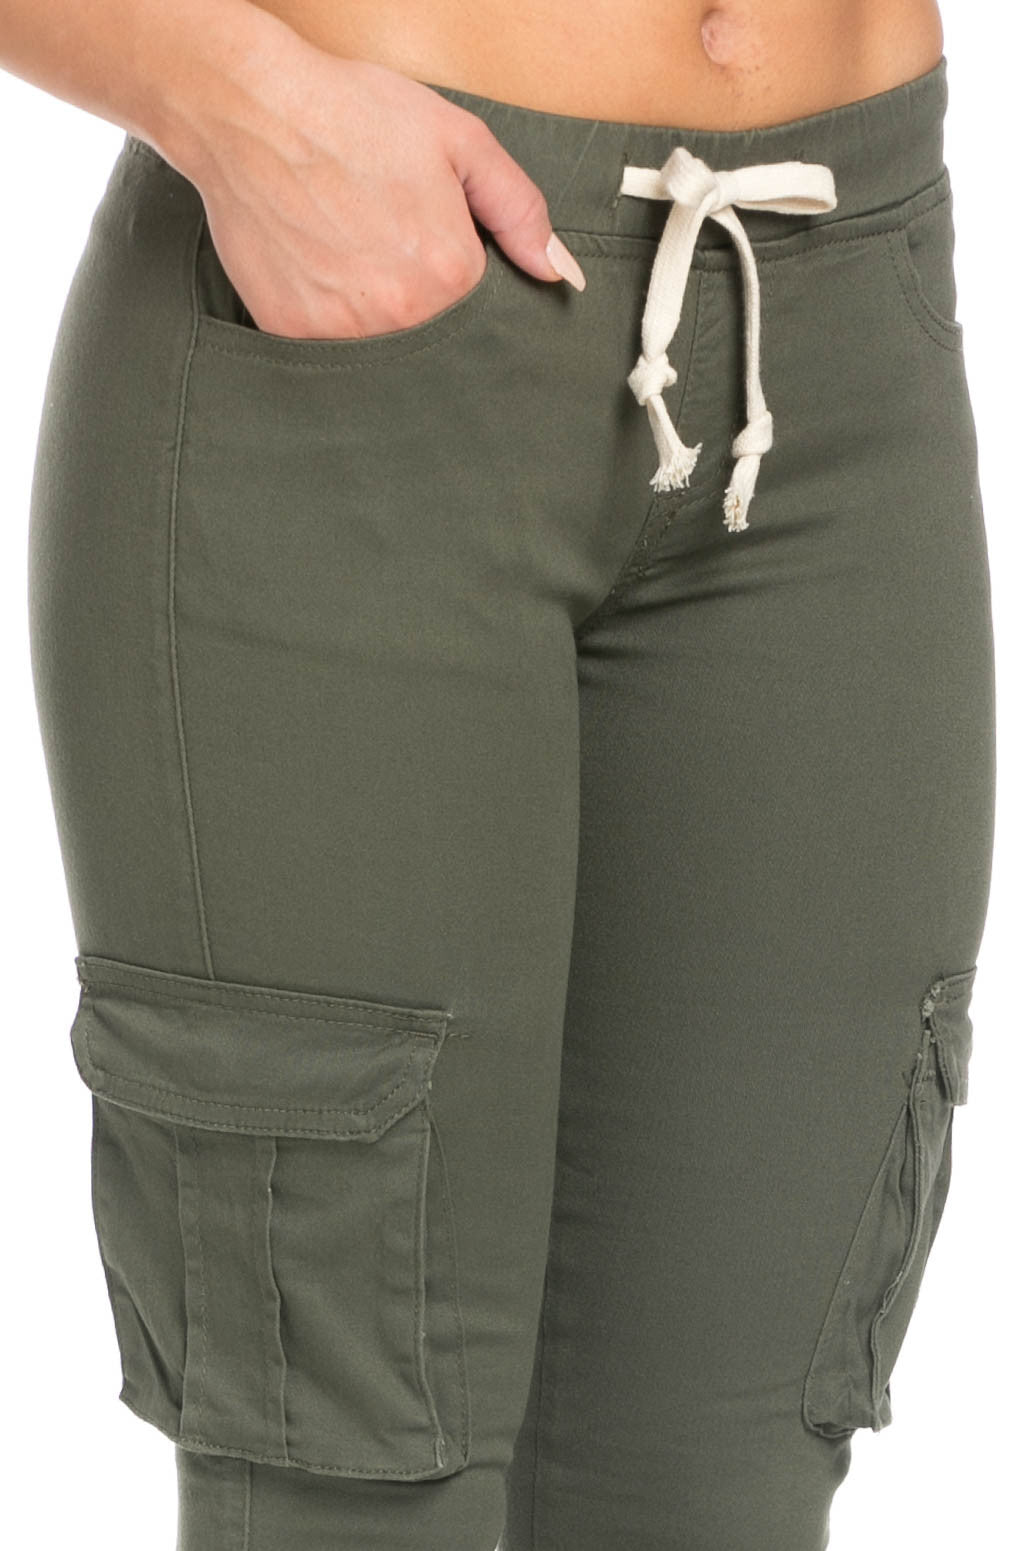 Mid Rise Skinny Olive Cargo Pants - Pants - My Yuccie - 7